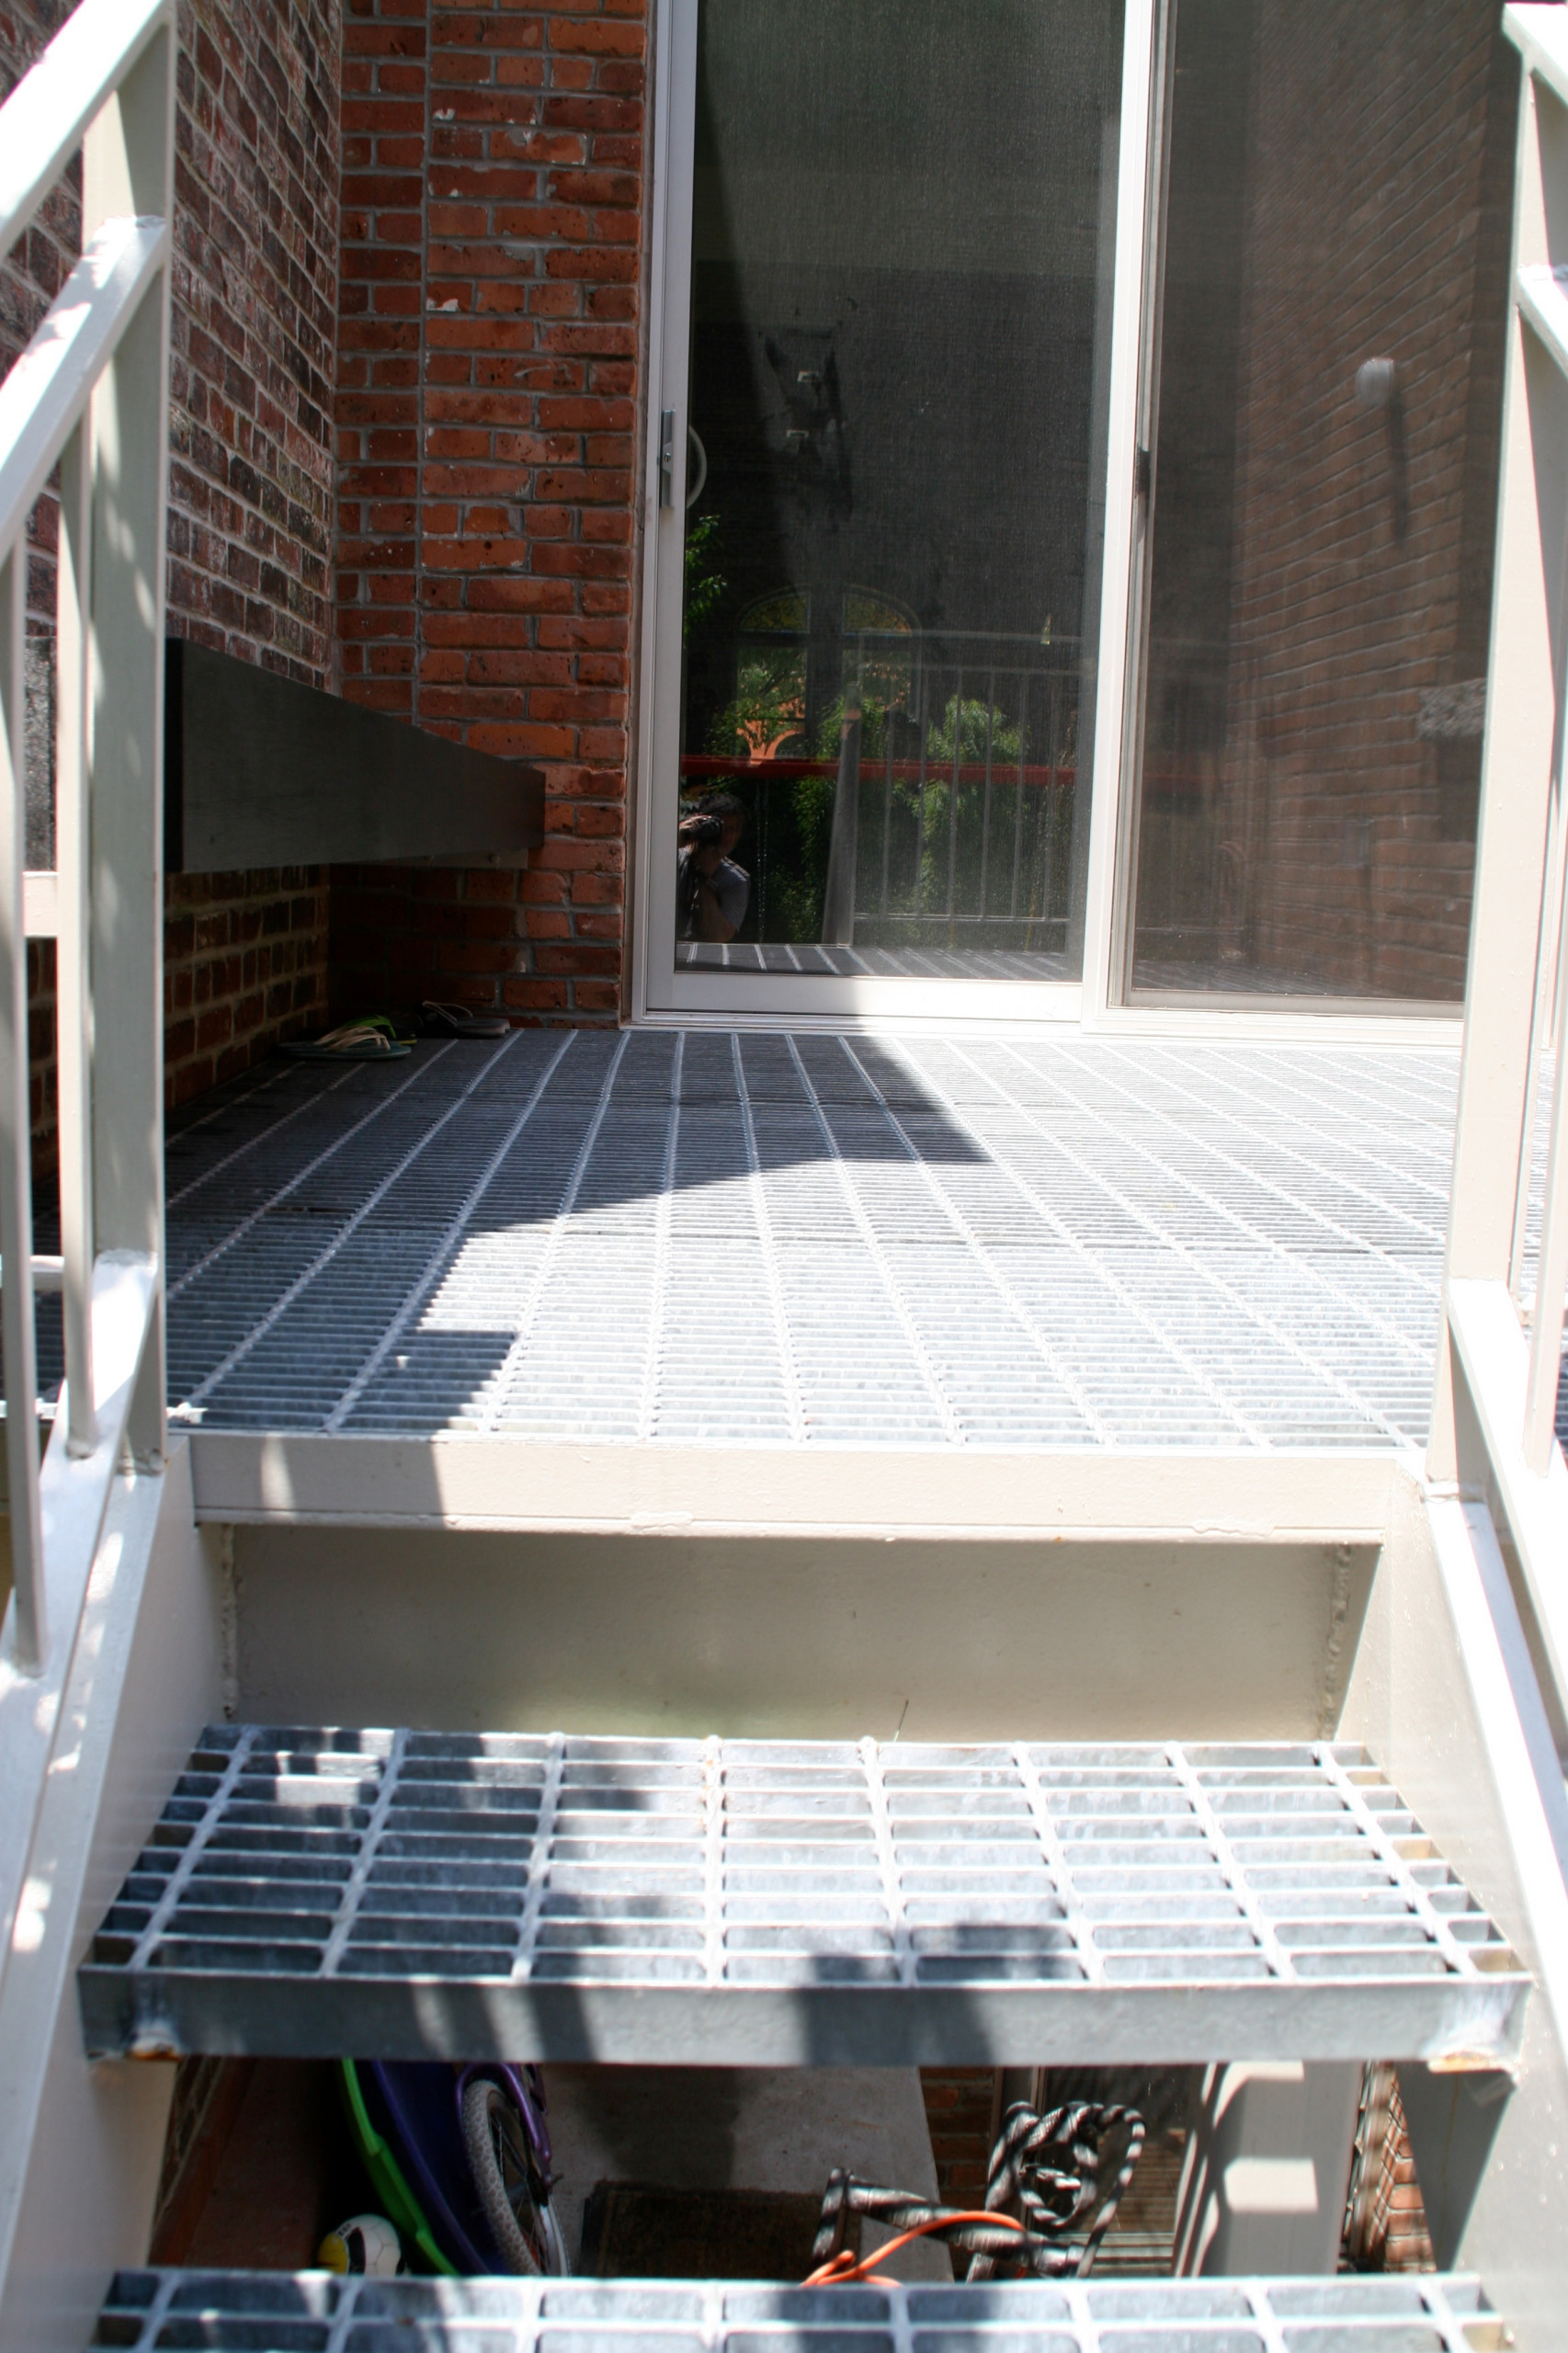 Deck with subway grating